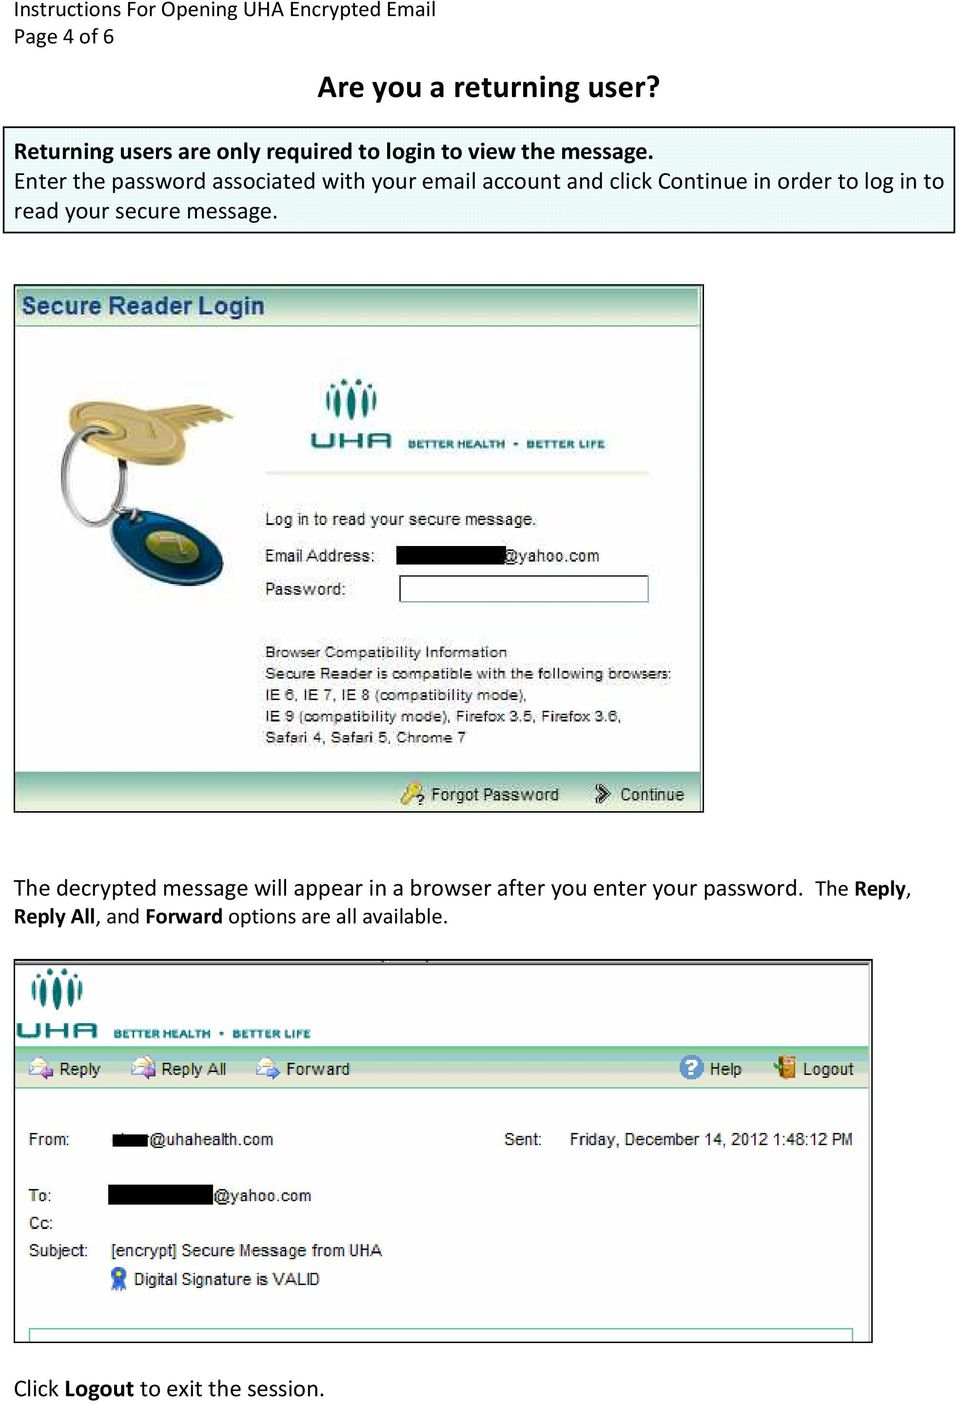 Enter the password associated with your email account and click Continue in order to log in to